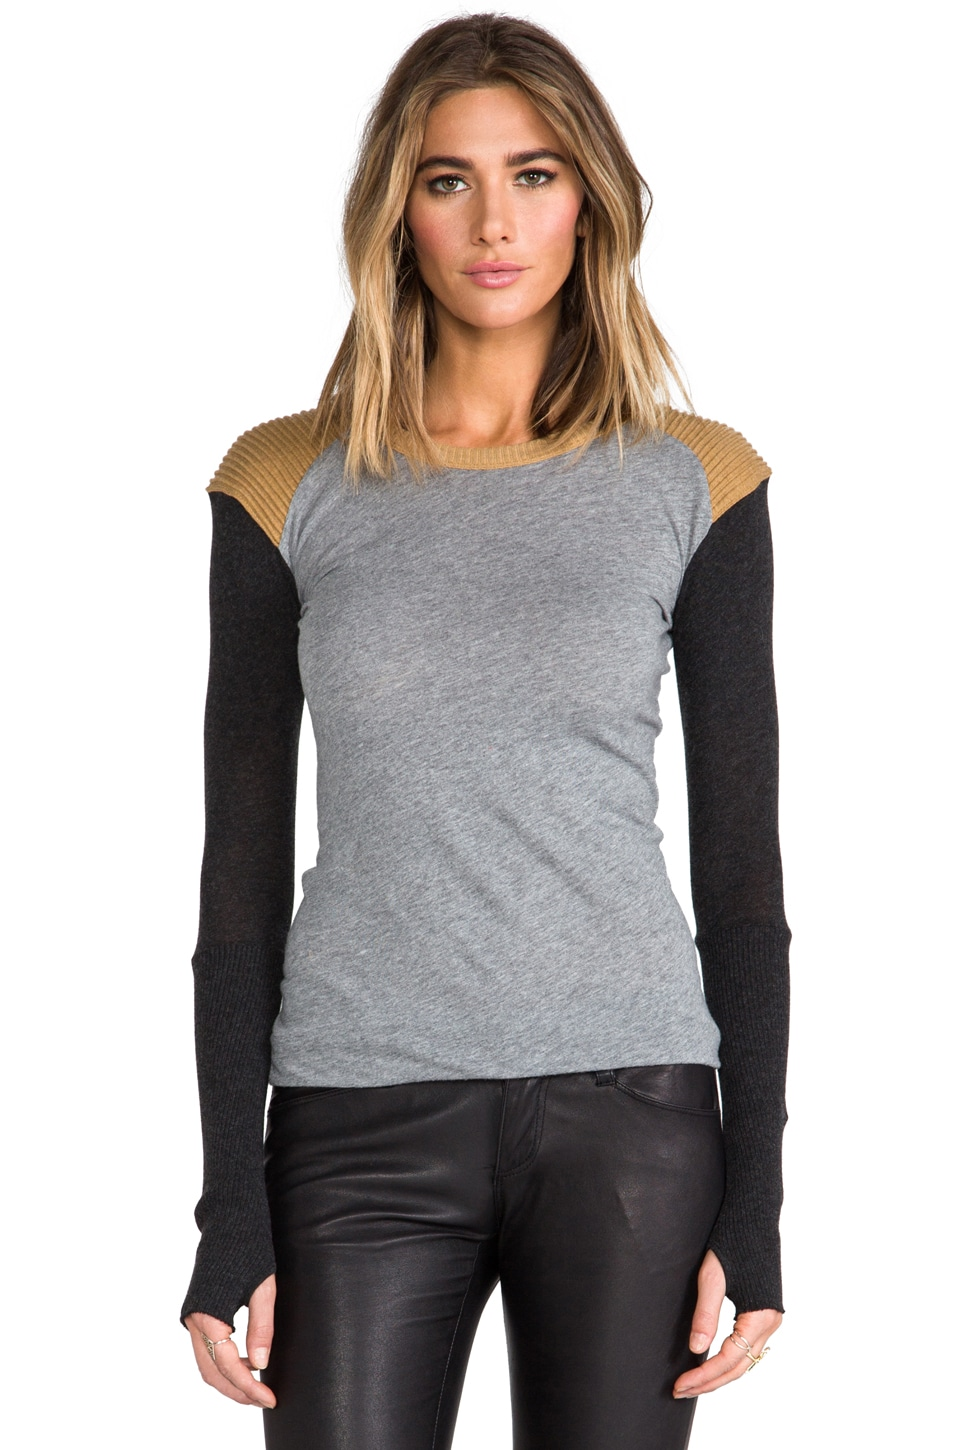 Enza Costa Cashmere Colorblock Crew in Ash/Smoke/Charcoal